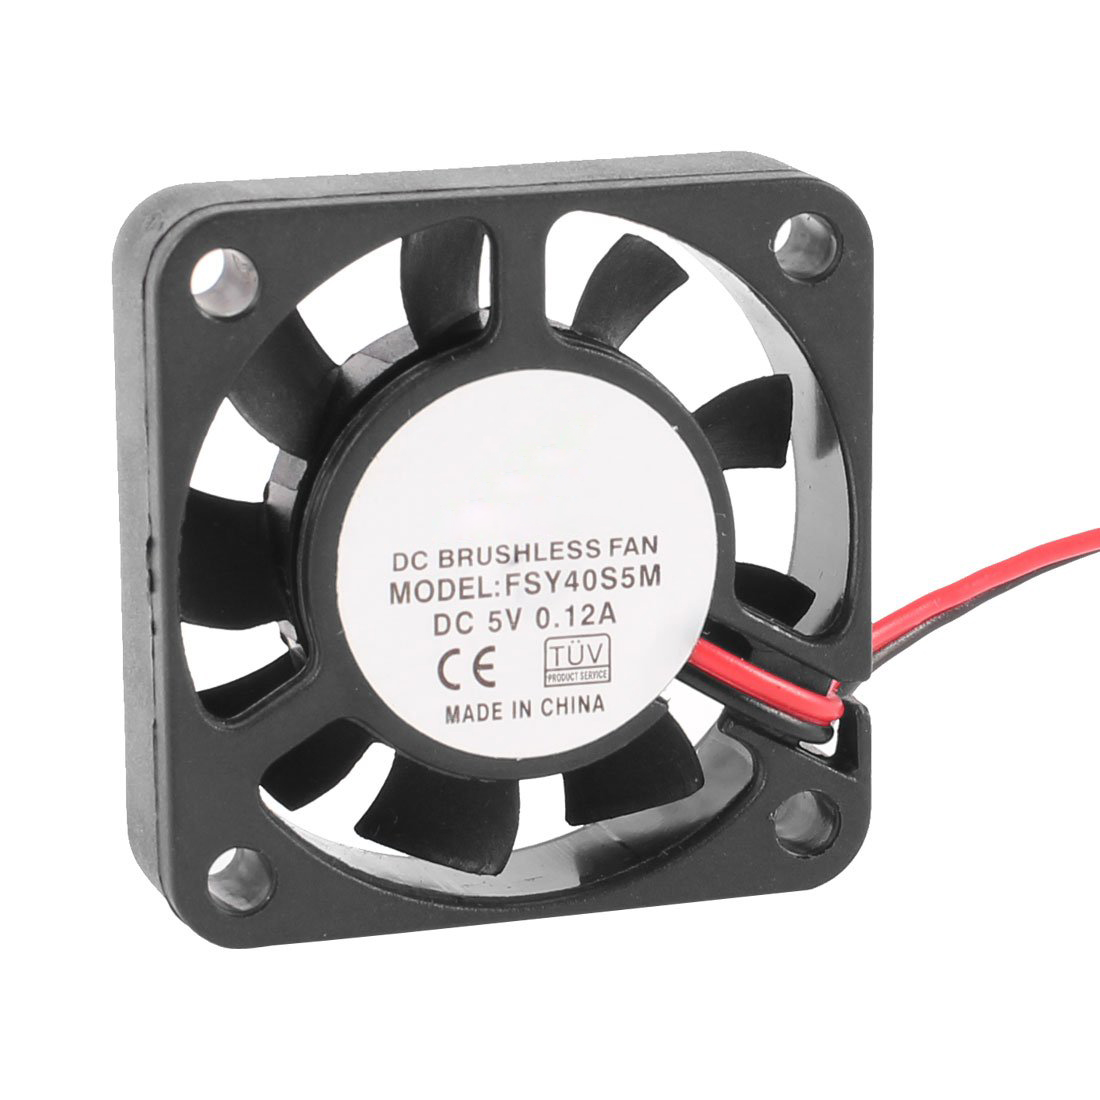 PROMOTION! 40mm x 10mm 0.12A 2Pin 5V DC Brushless Sleeve Bearing Cooling Fan ганг ваза фруктовница ракушка